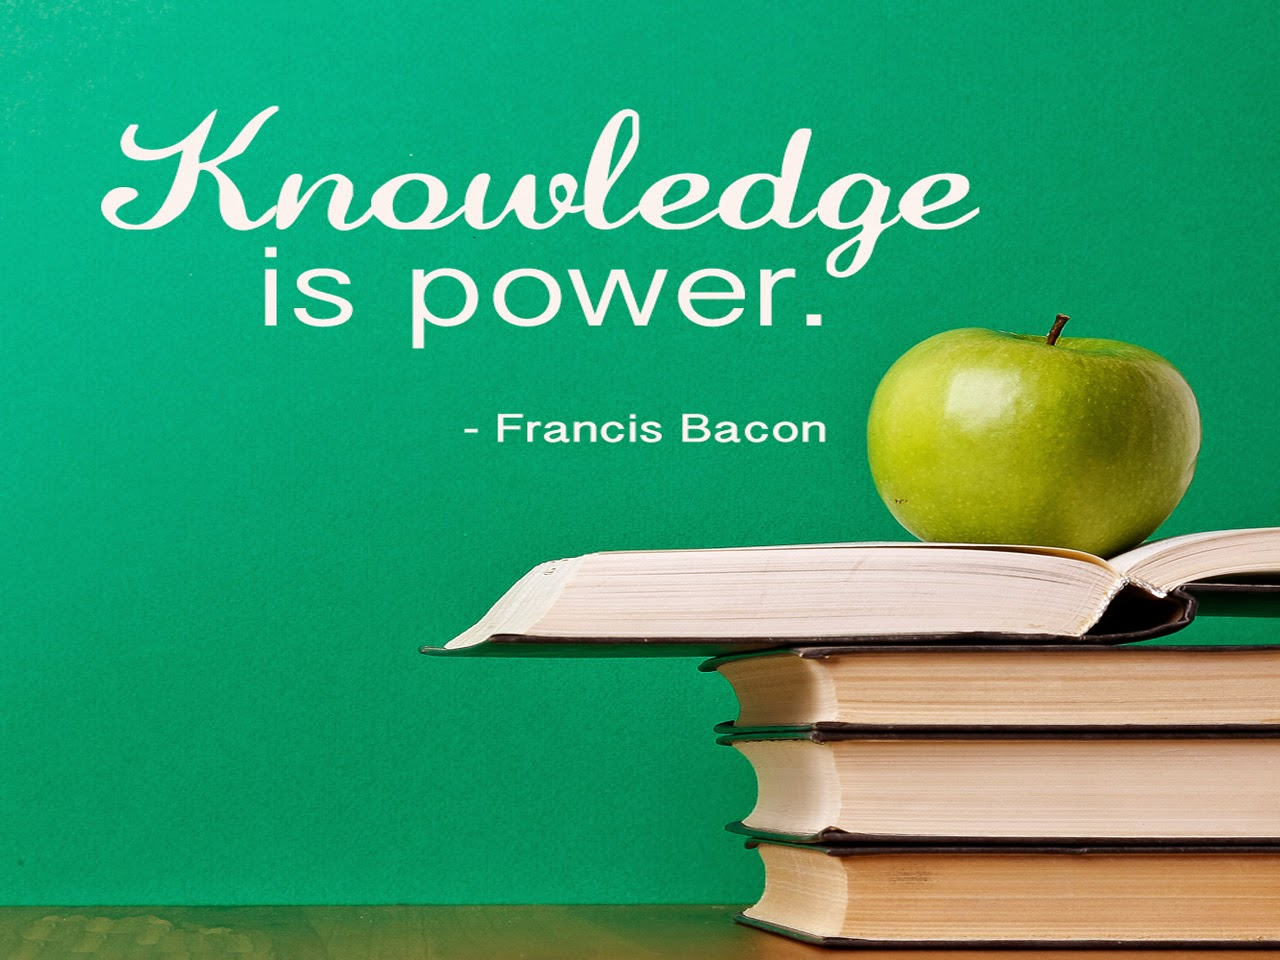 knowledge is power vs knowledge is Knowledge is power 834k likes covering the news the media won't cover.